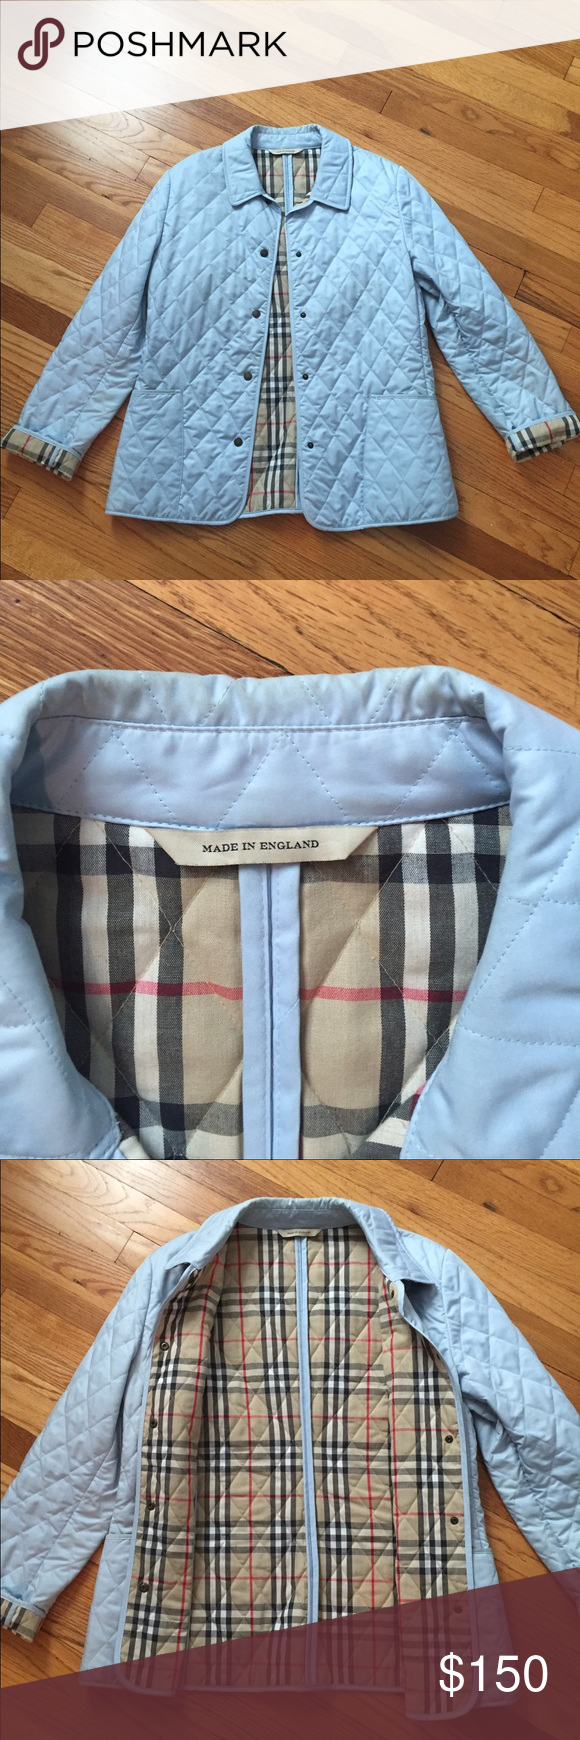 Authentic Burberry Quilted Jacket In Light Blue Burberry Quilted Jacket Quilted Jacket Jackets